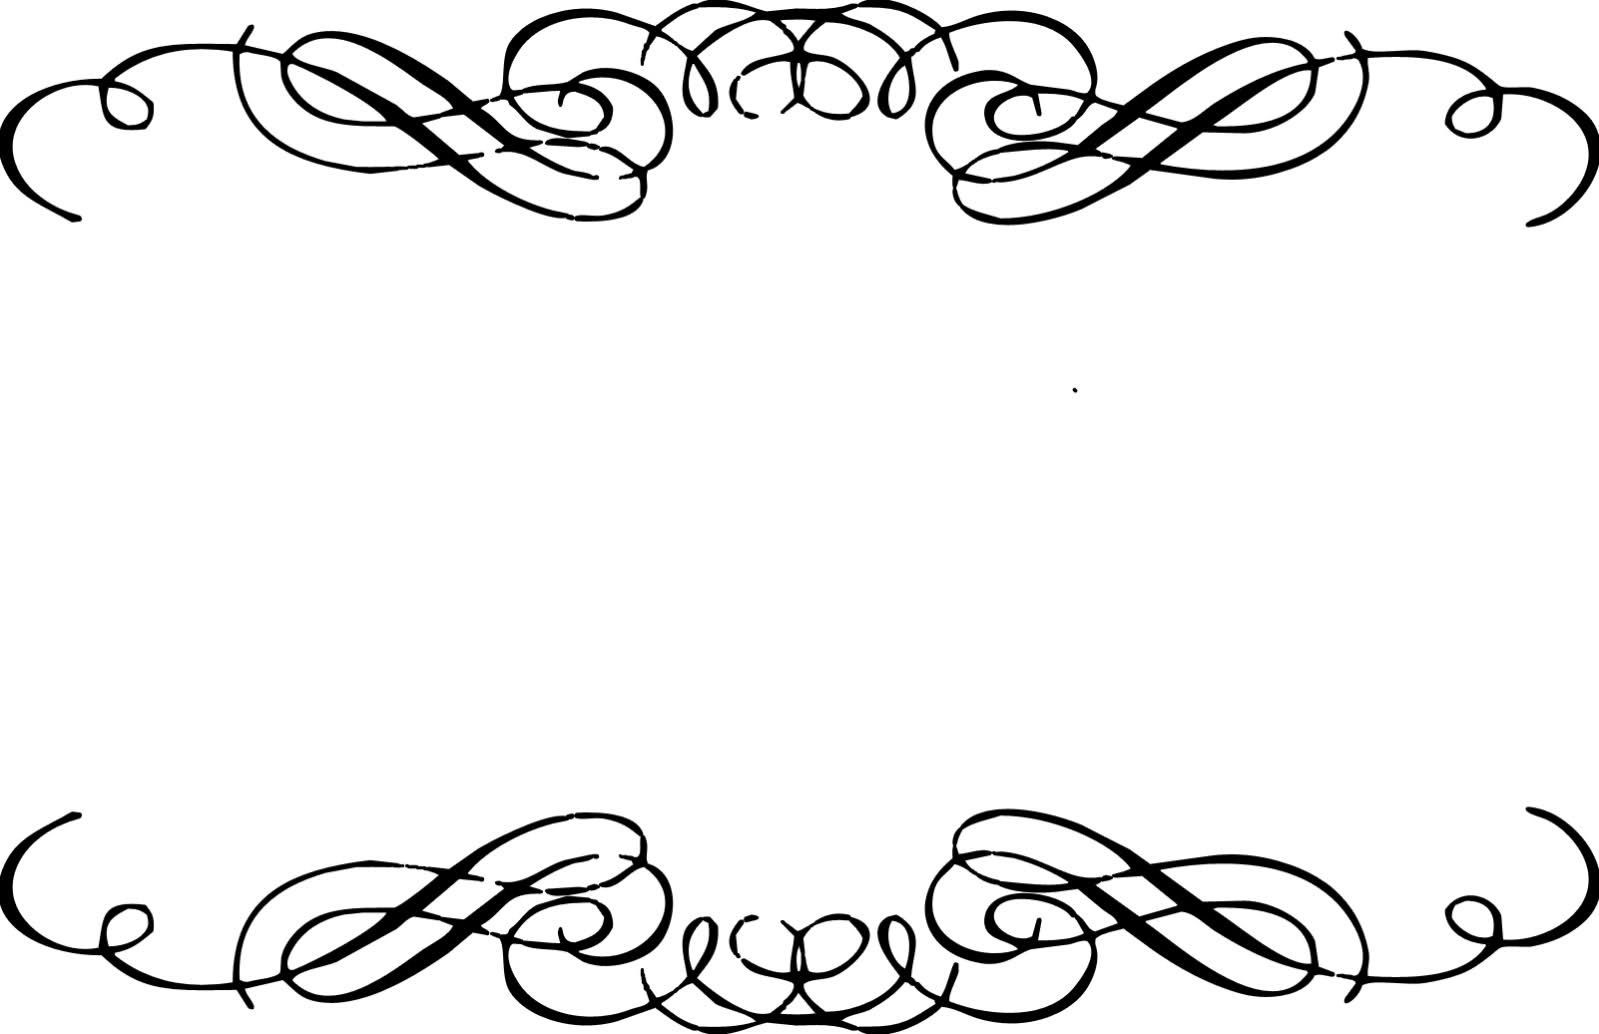 Free calligraphy swirls clipart 5 » Clipart Portal.